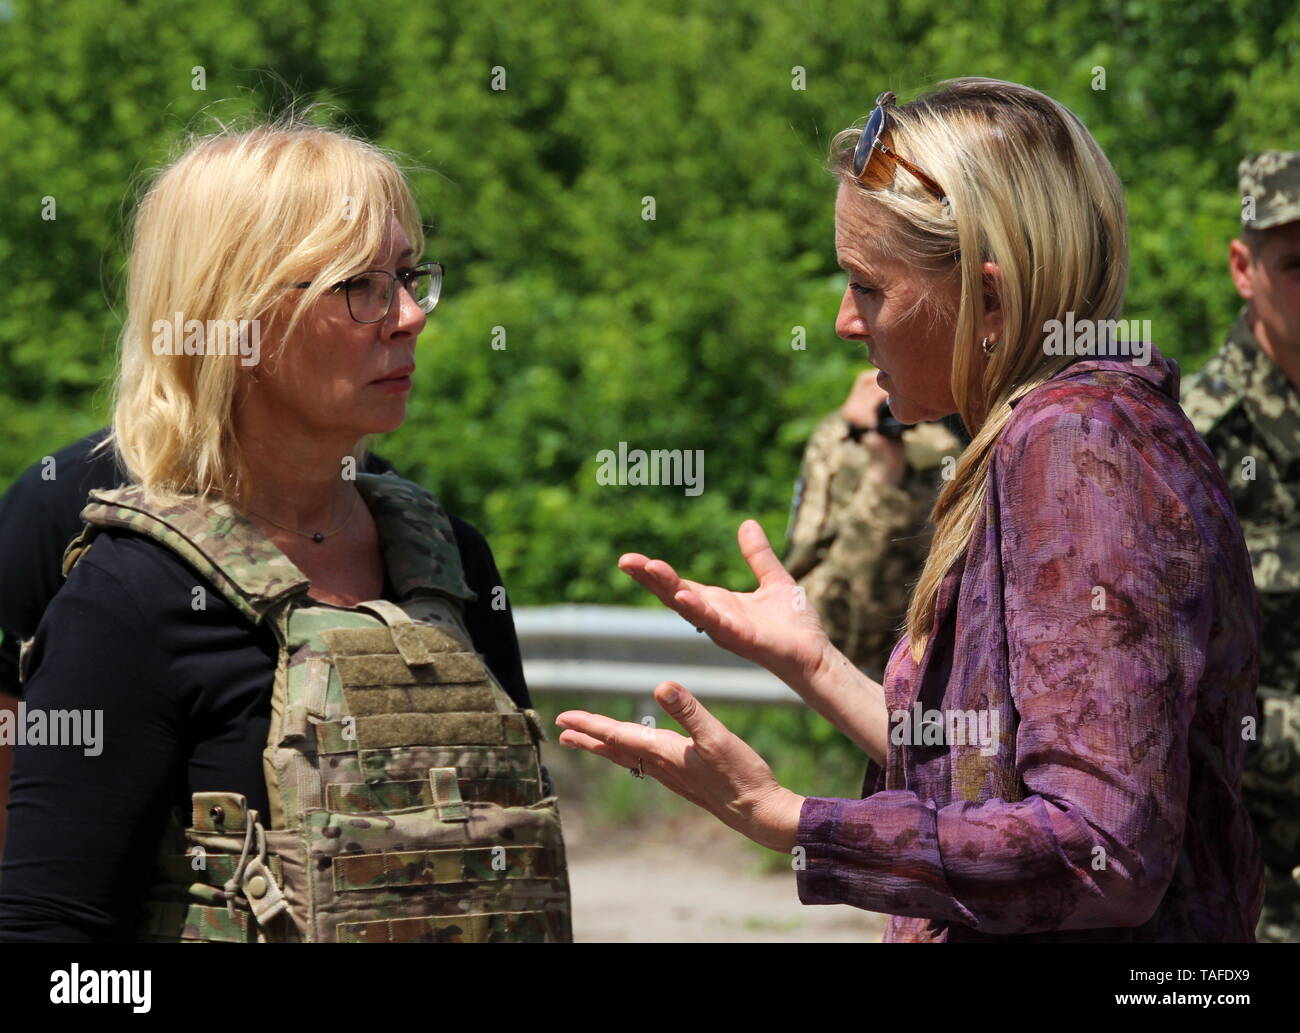 Ukraine. 24th May, 2019. LUGANSK REGION, UKRAINE - MAY 24, 2019: Lyudmyla Denisova (L), Ukraine's Commissioner for Human Rights, and Olga Kobtseva representing the Lugansk People's Republic in the humanitarian subgroup of the Trilateral Contact Group on Ukraine, meet as the republic transfers 60 prisoners convicted before the 2014 Ukrainian crisis, to Ukraine. Alexander Reka/TASS Credit: ITAR-TASS News Agency/Alamy Live News - Stock Image